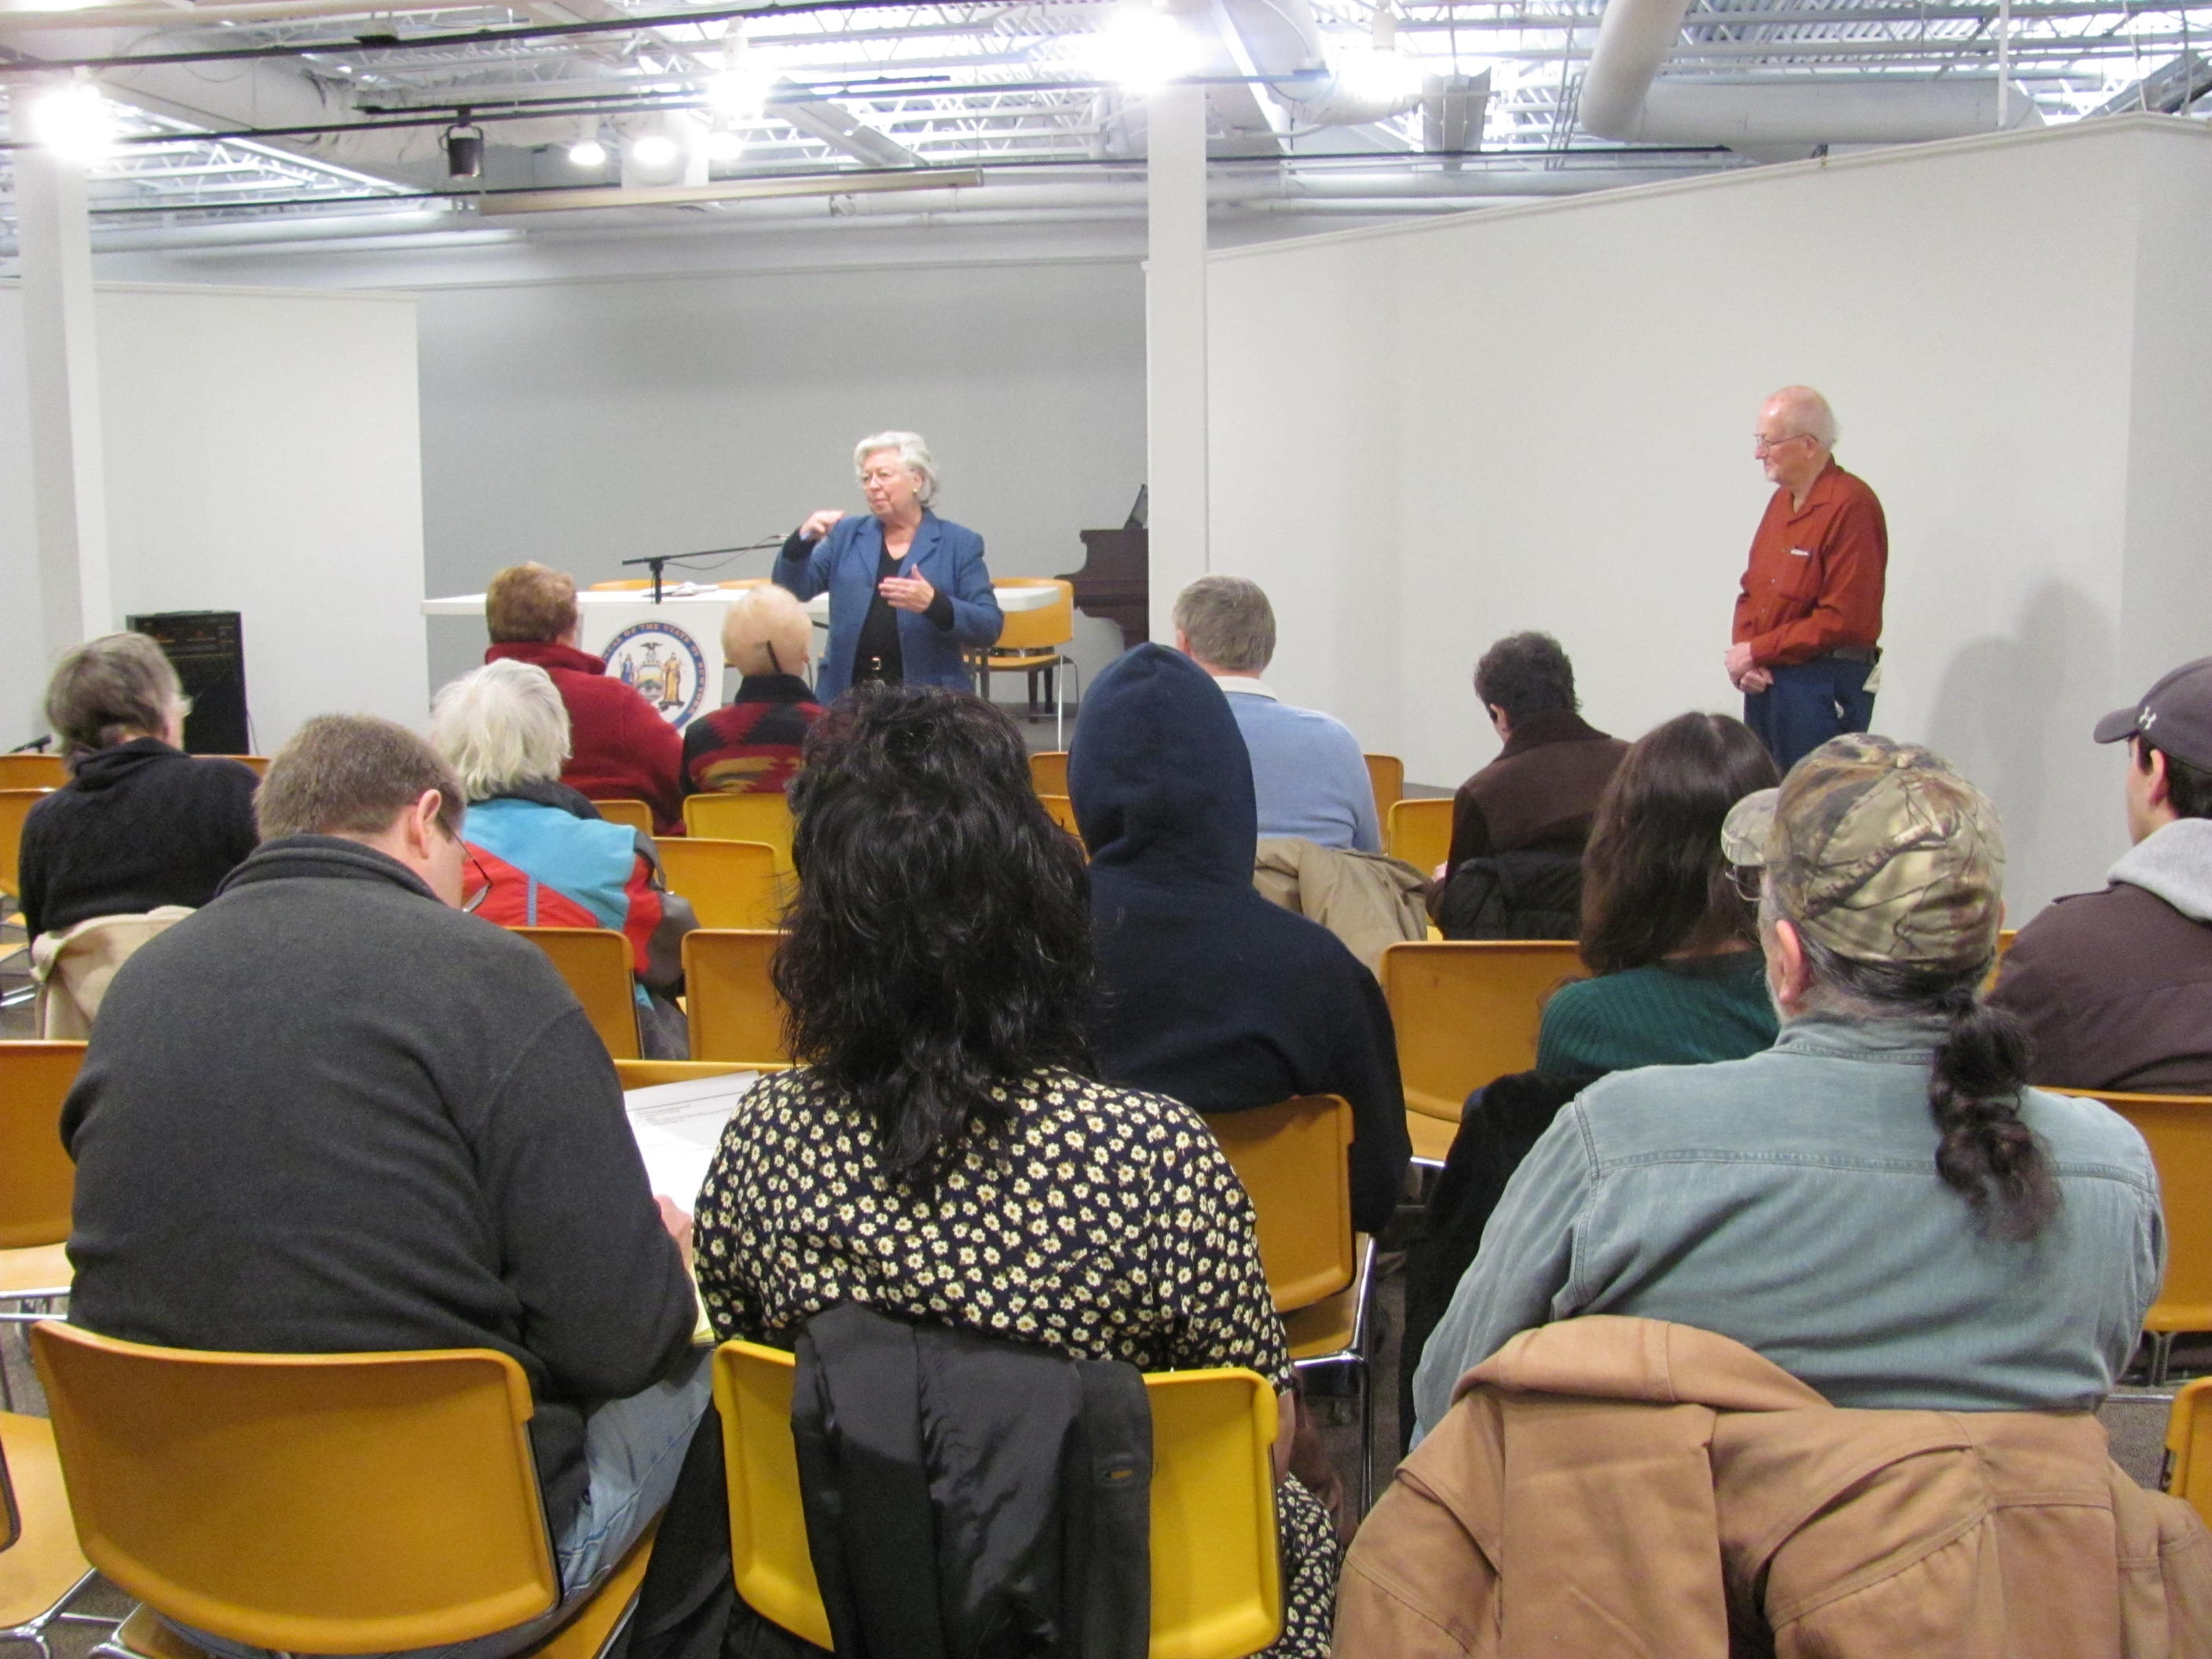 Sandy met with constituents at Desmond Fish Library in Garrison where they discussed state and local issues.